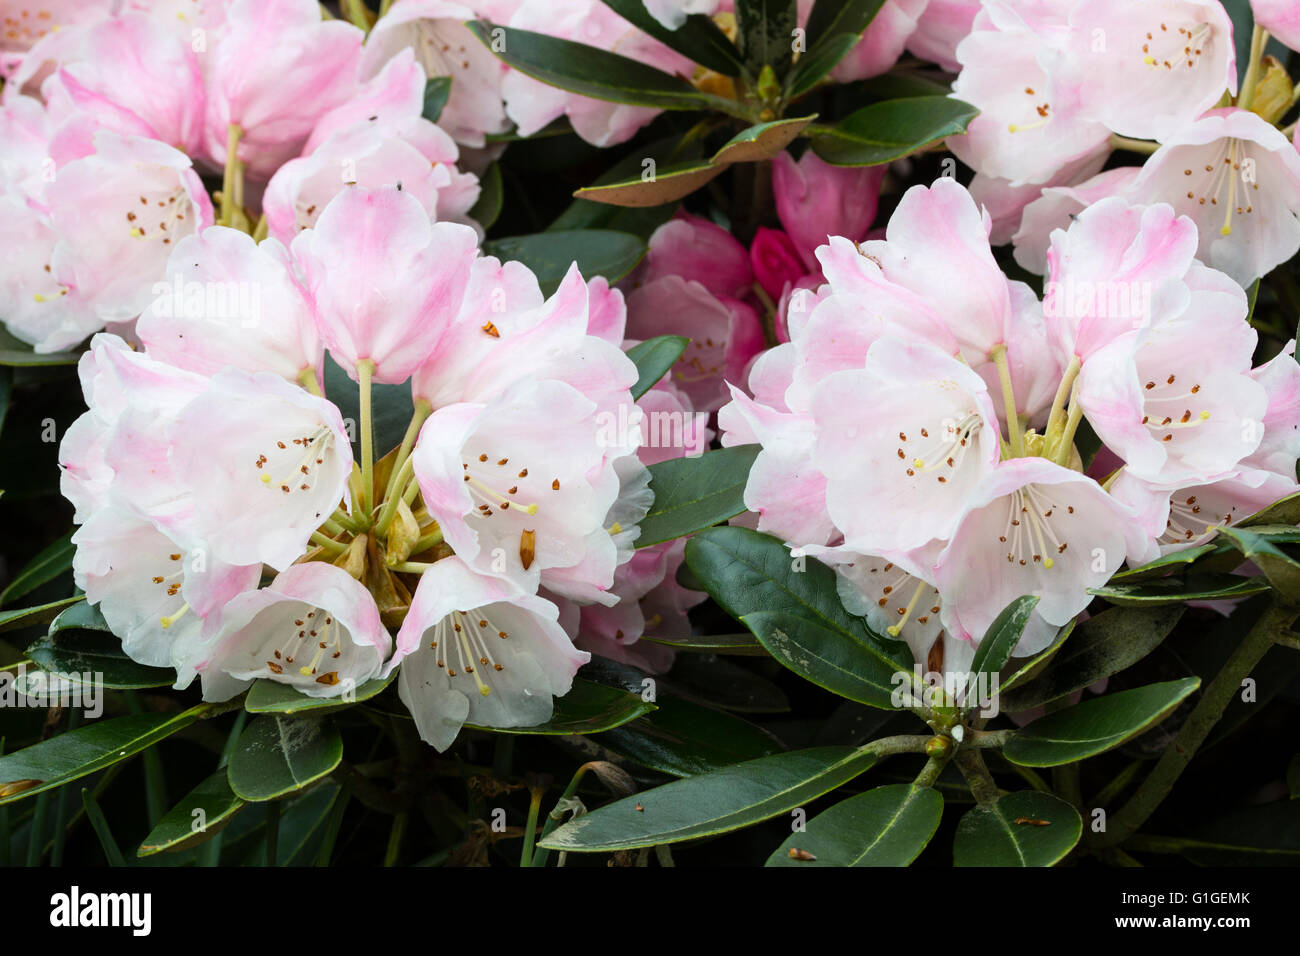 Pink flushed white bell flowers in the trusses of the evergreen pink flushed white bell flowers in the trusses of the evergreen shrub rhododendron glendoick silver mightylinksfo